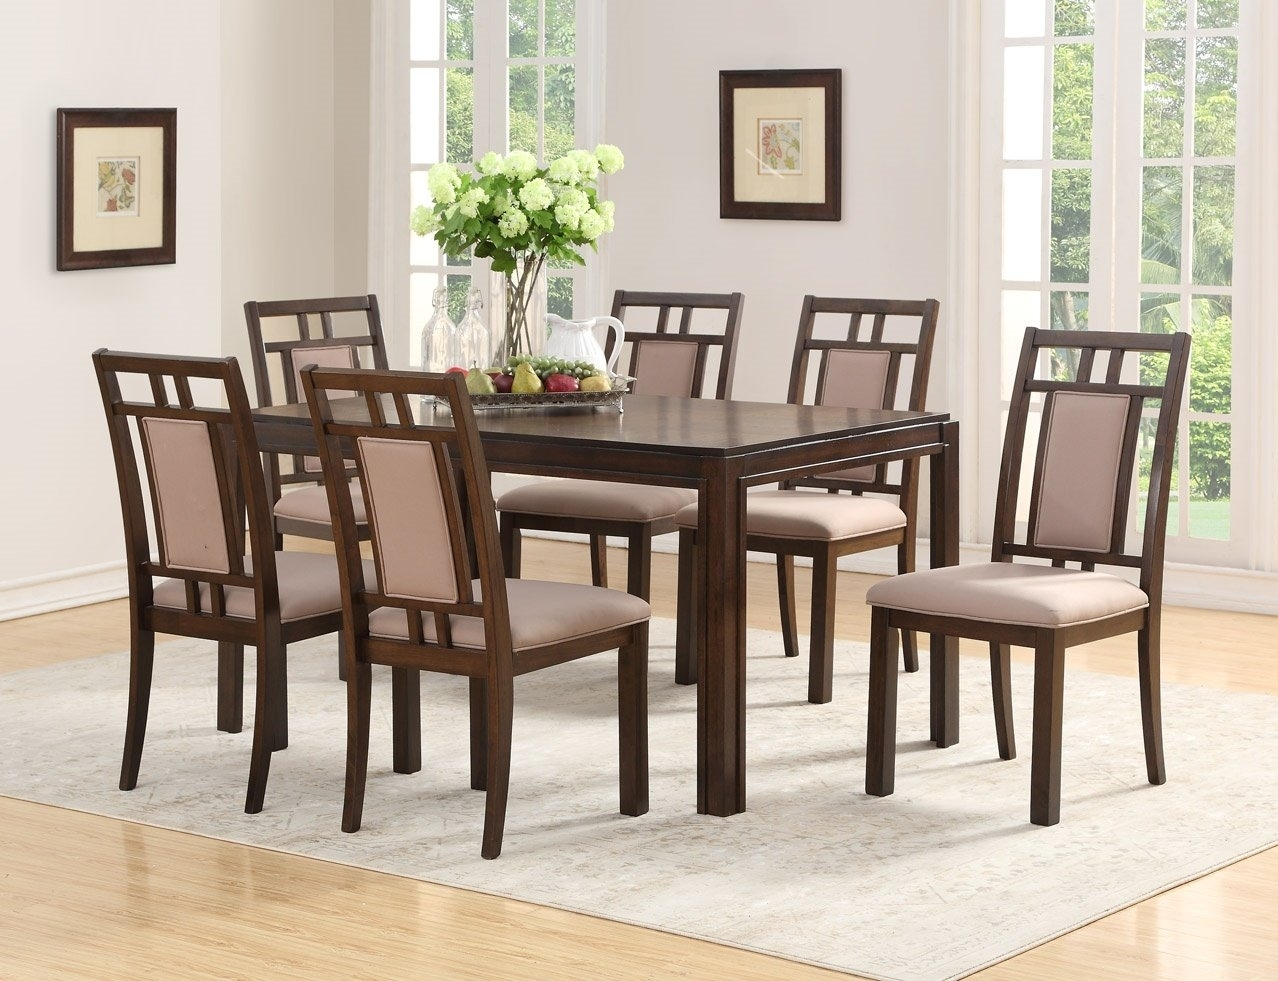 Red Barrel Studio Heid Parquet 7 Piece Dining Set | Wayfair For Best And Newest Parquet 7 Piece Dining Sets (Photo 1 of 20)